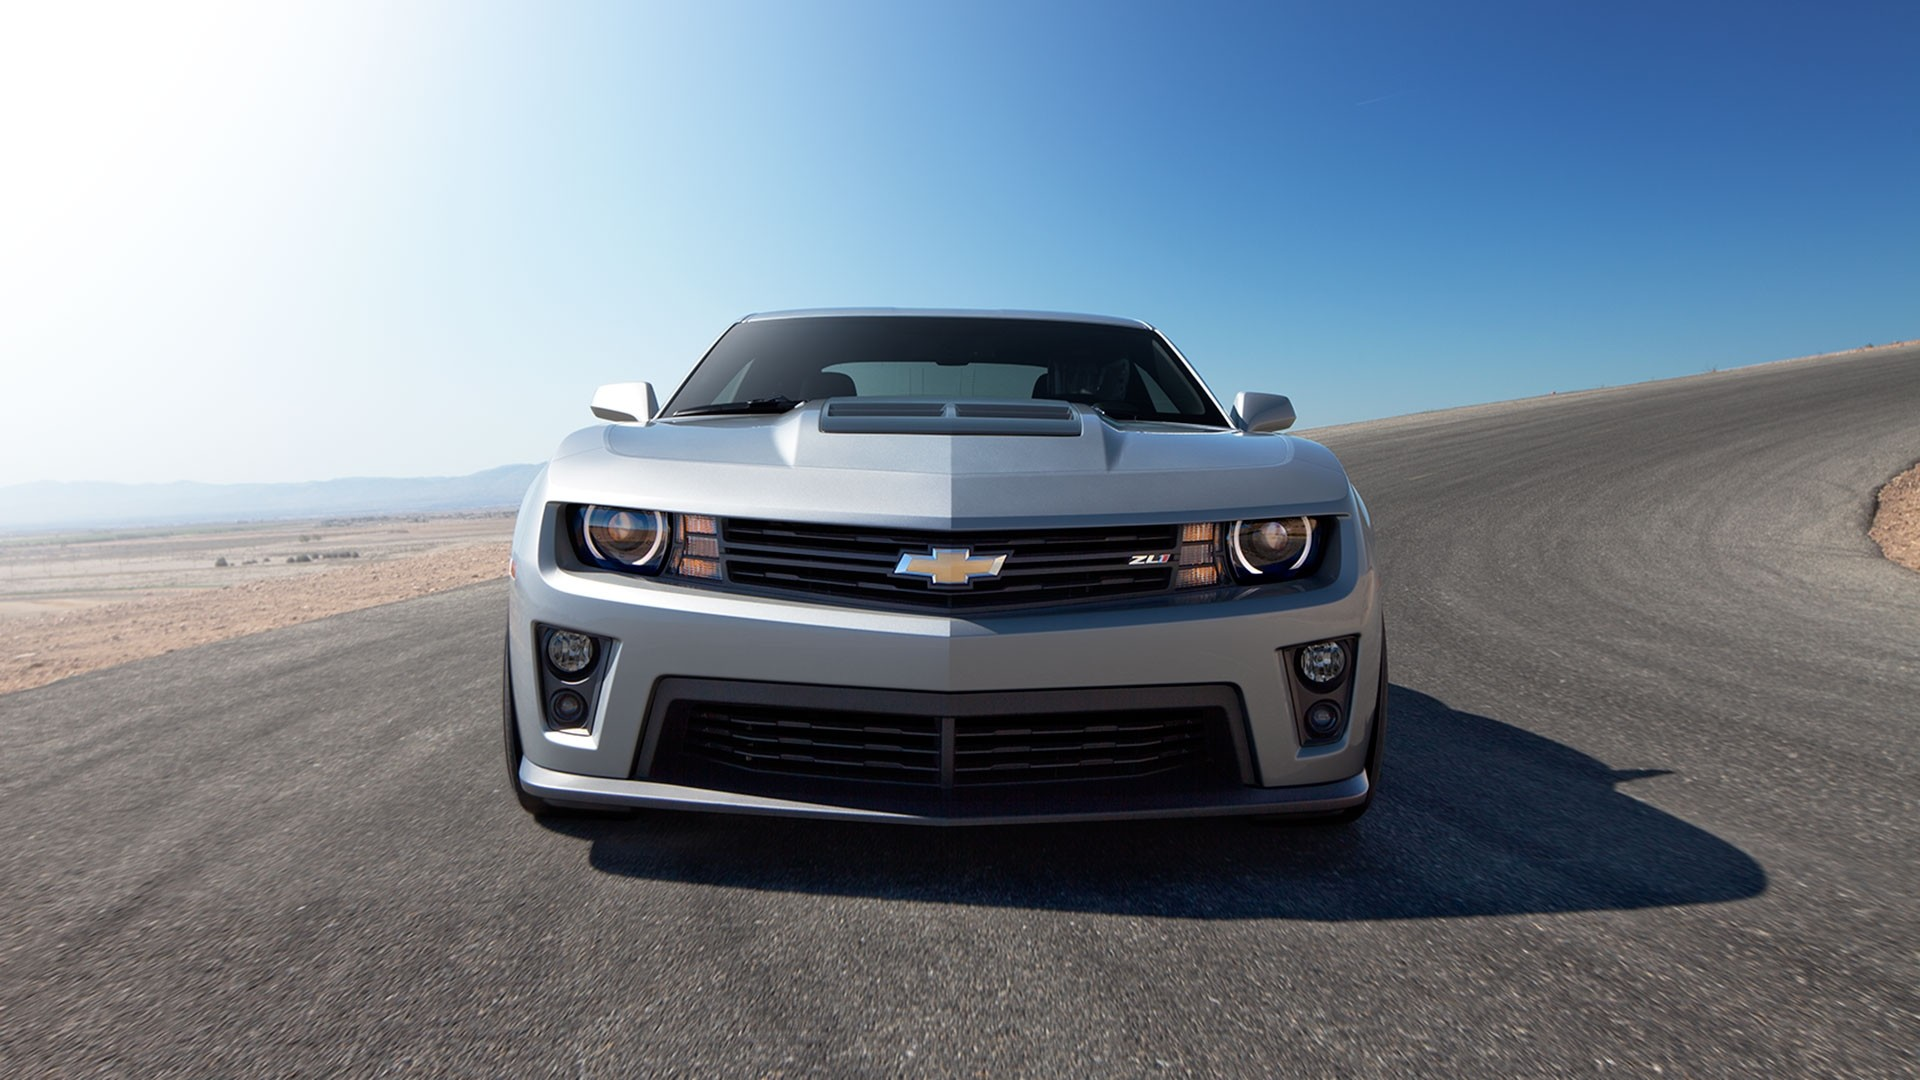 Res: 1920x1080, 2017 Chevrolet Camaro ZL1 Convertible Cool Car Wallpapers HD